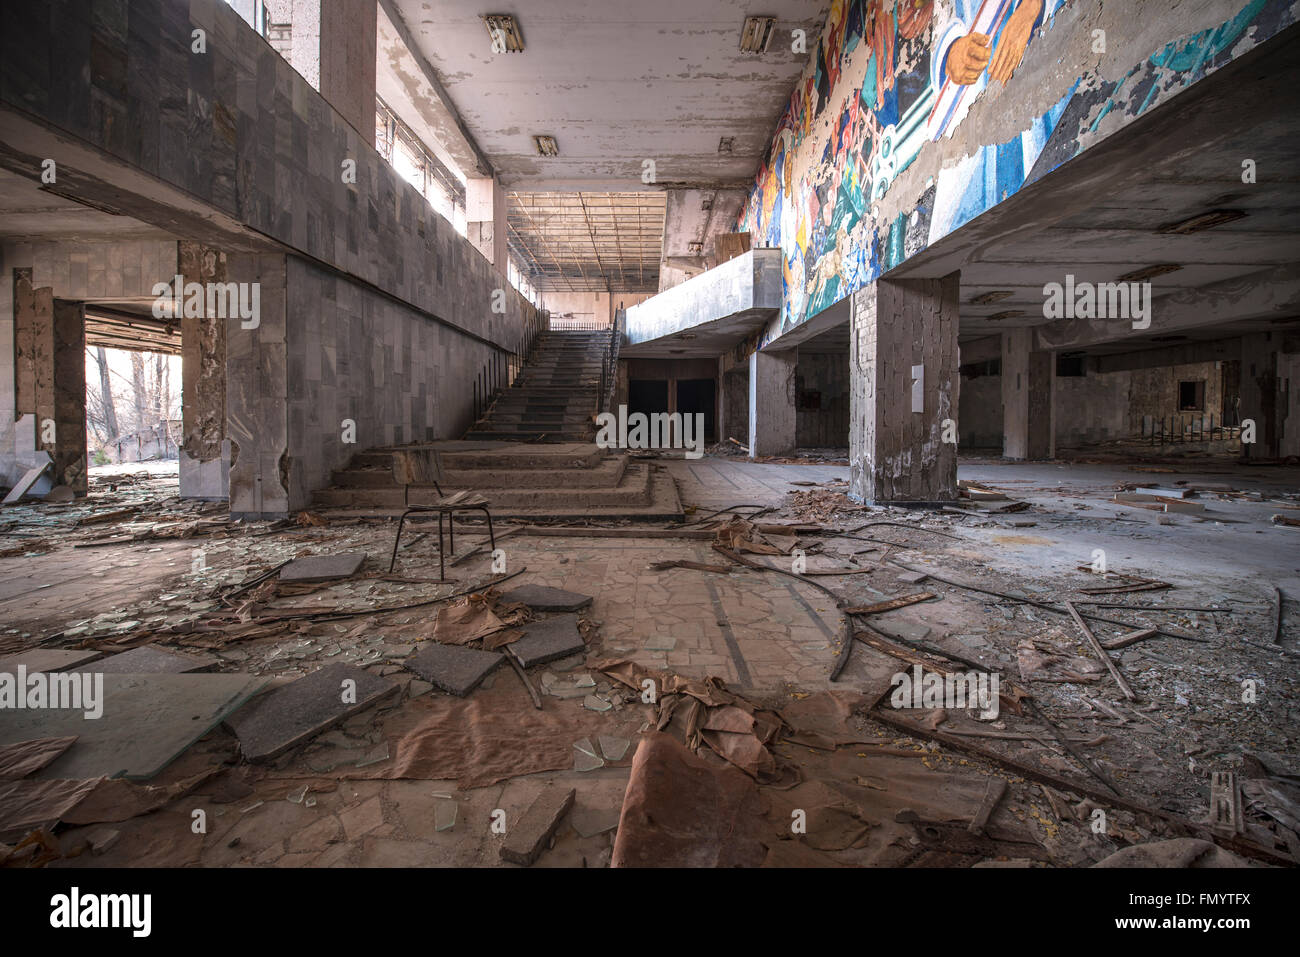 Grand Hall in Pripyat, Chernobyl scene of 1986 nuclear disaster Stock Photo